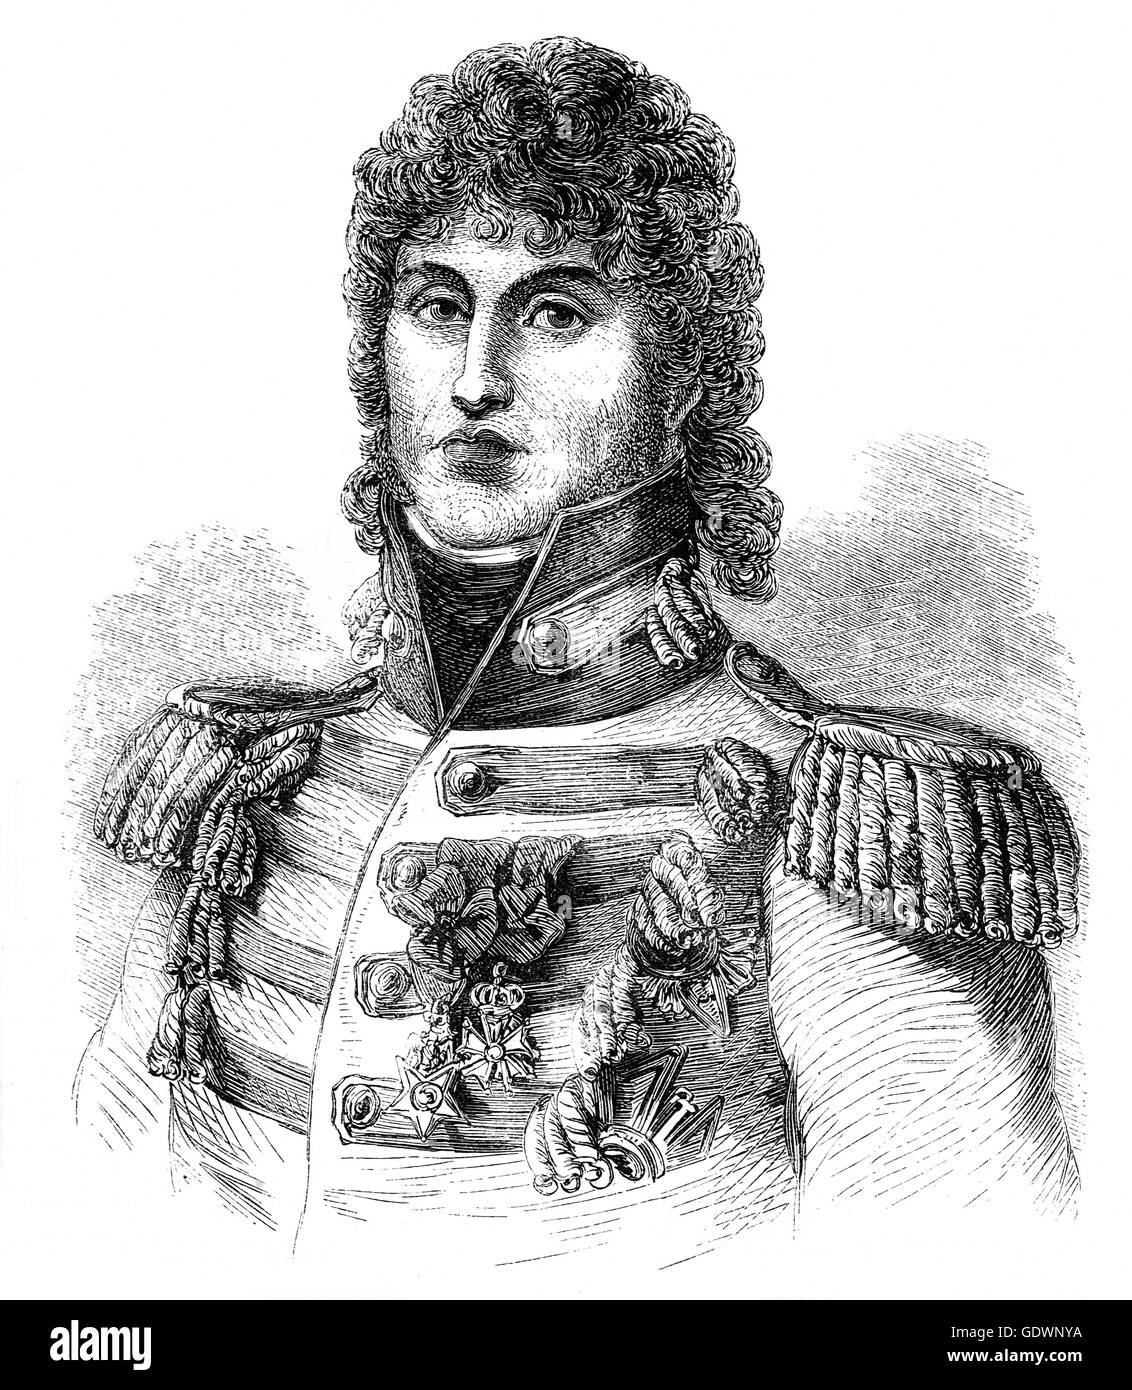 General Joachim-Napoléon Murat (1767 – 1815) was a Marshal of France and Admiral of France under the reign - Stock Image